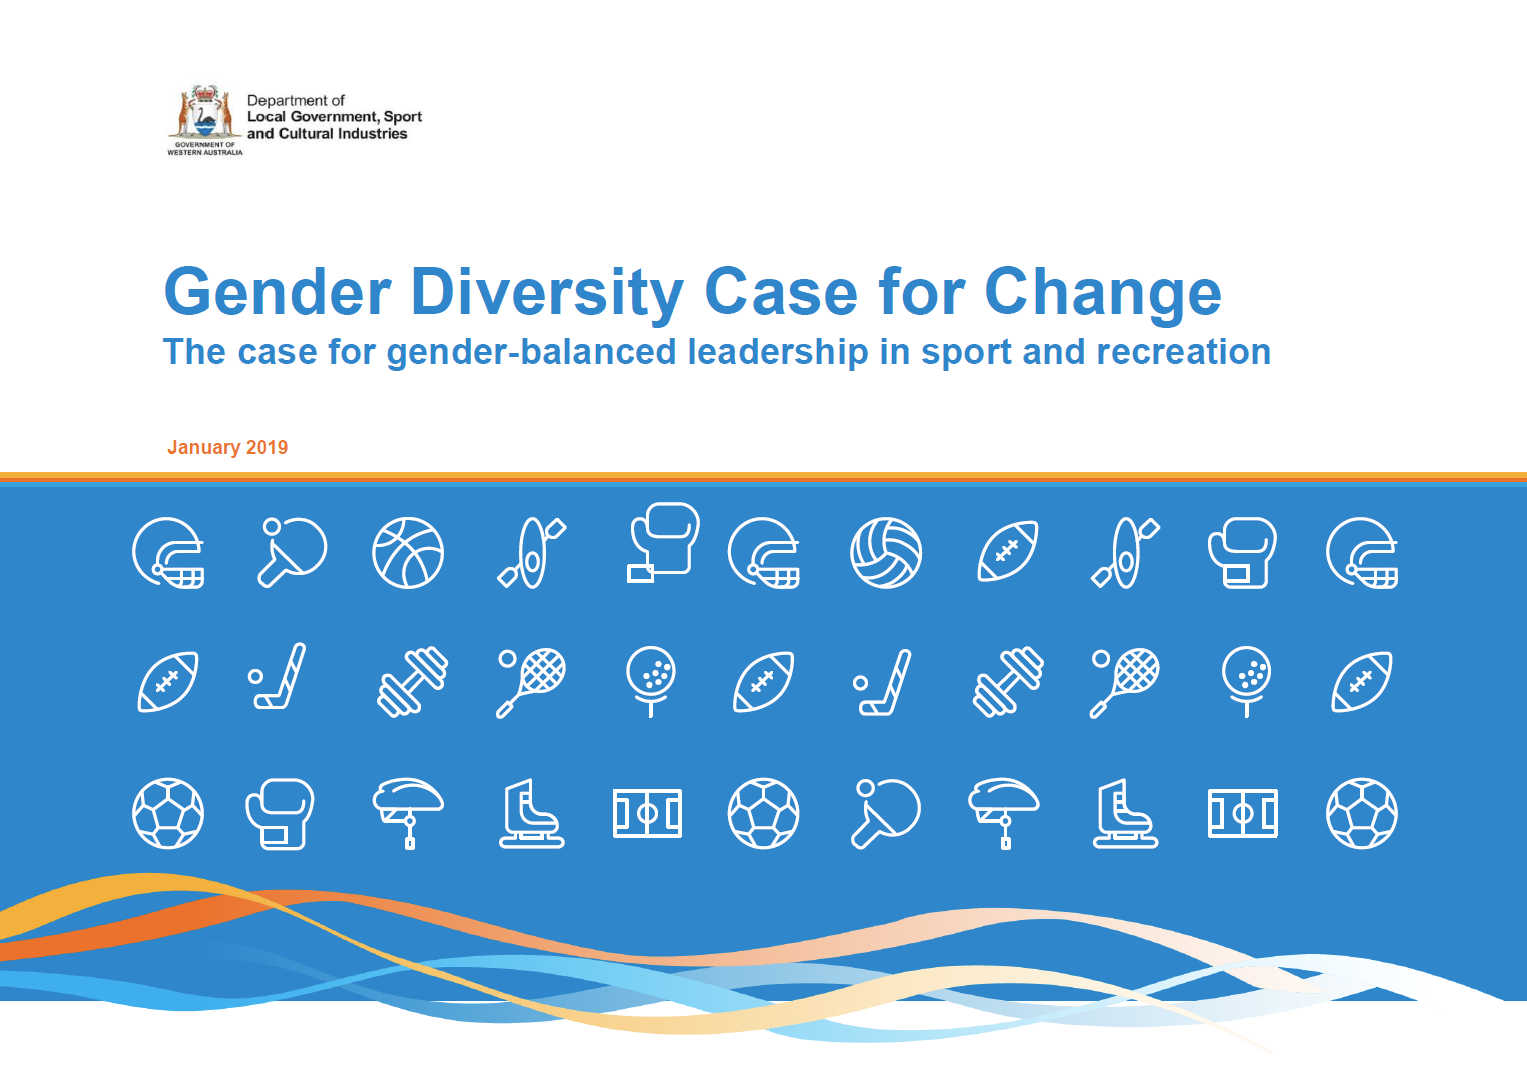 C:\Users\gwhite\DLGSC\DLGSC Website - Documents\Content\Images\Gender Diversity Case for Change cover